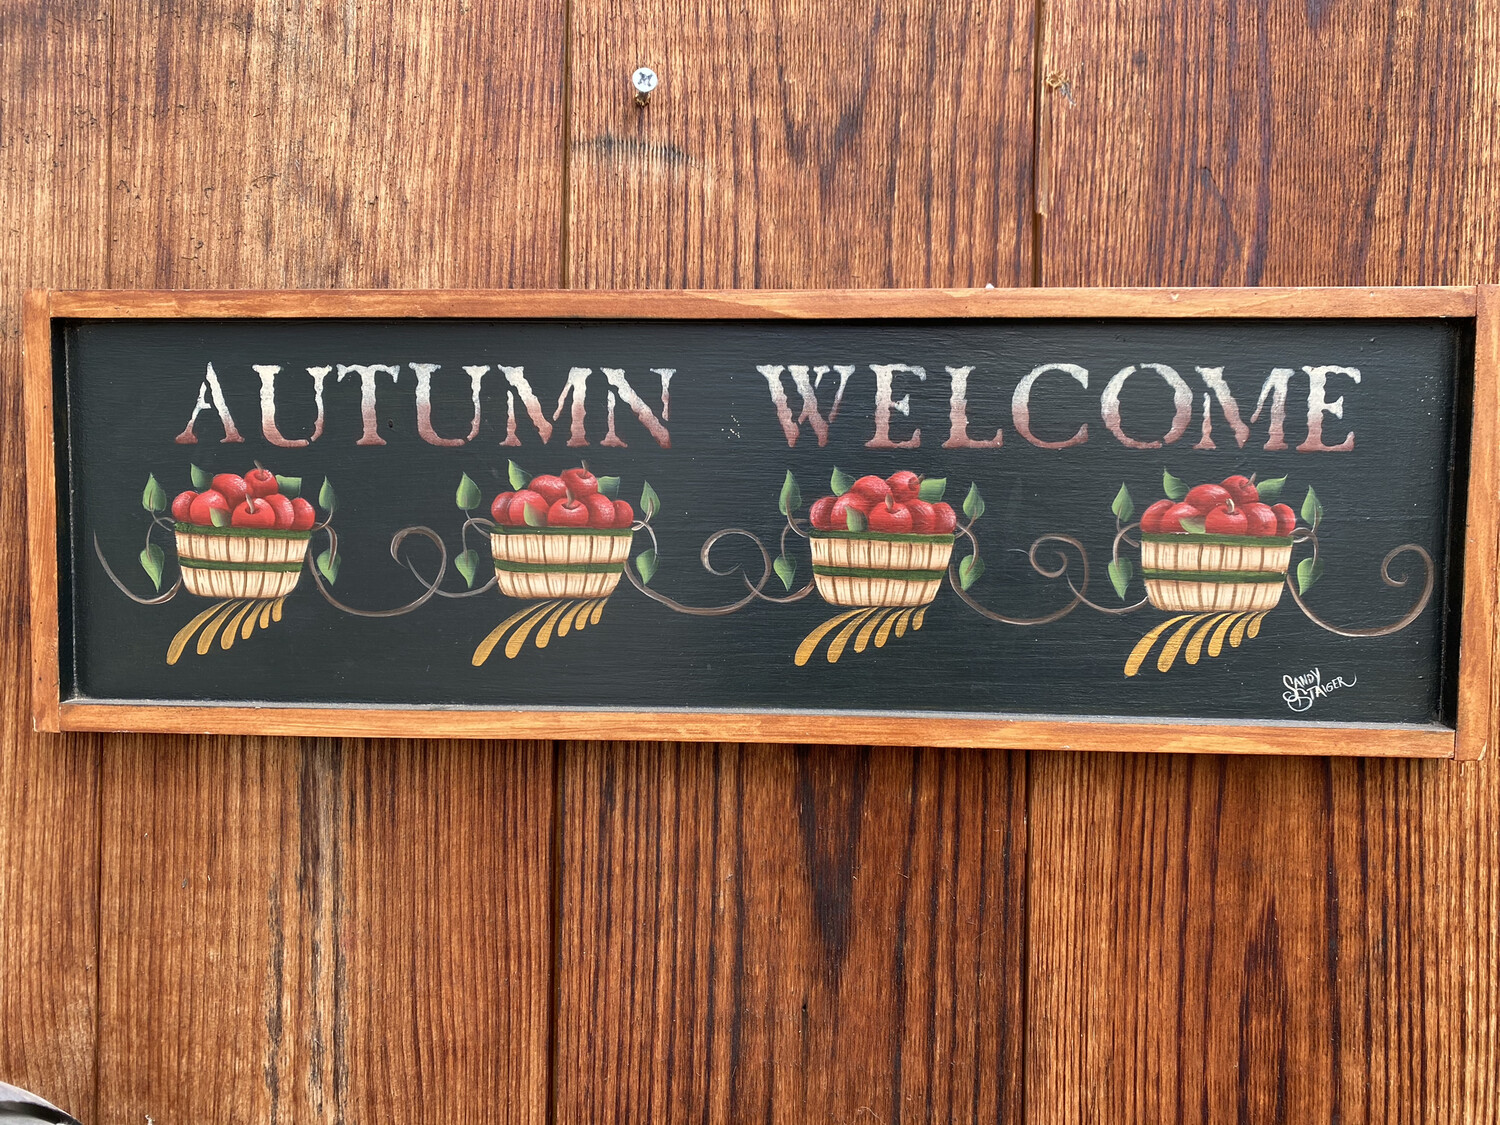 Autumn Welcome Wallhanging | Finely Finished by Sandra Staiger